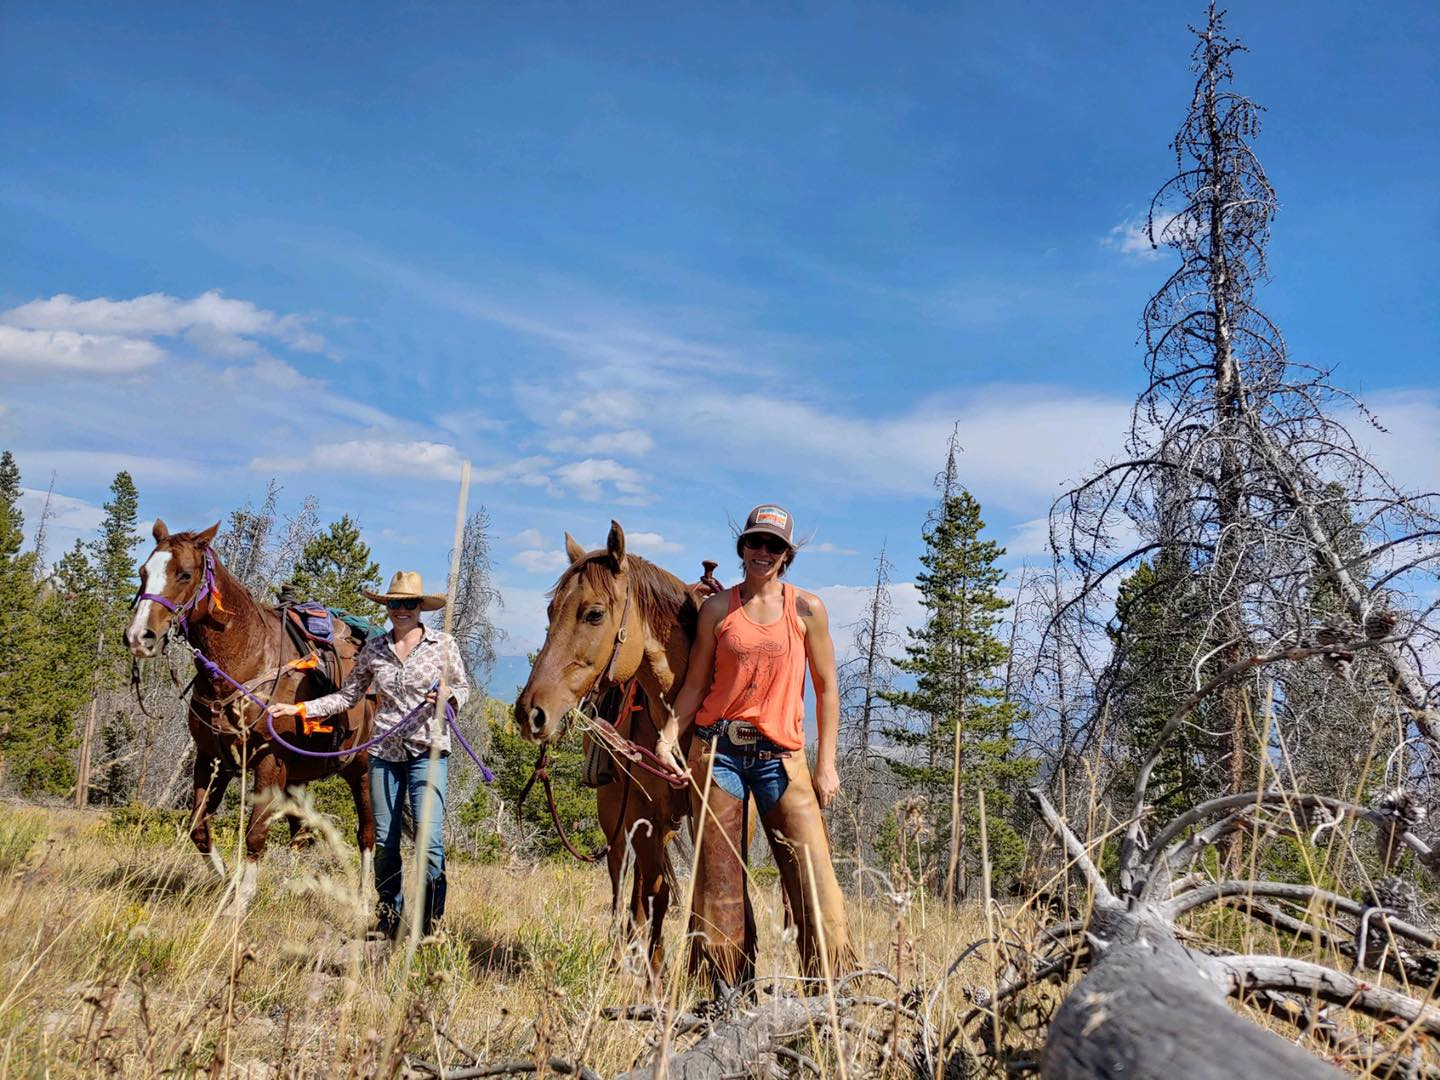 Image of cowgirls at the Drowsy Water Dude Ranch in Granby, Colorado